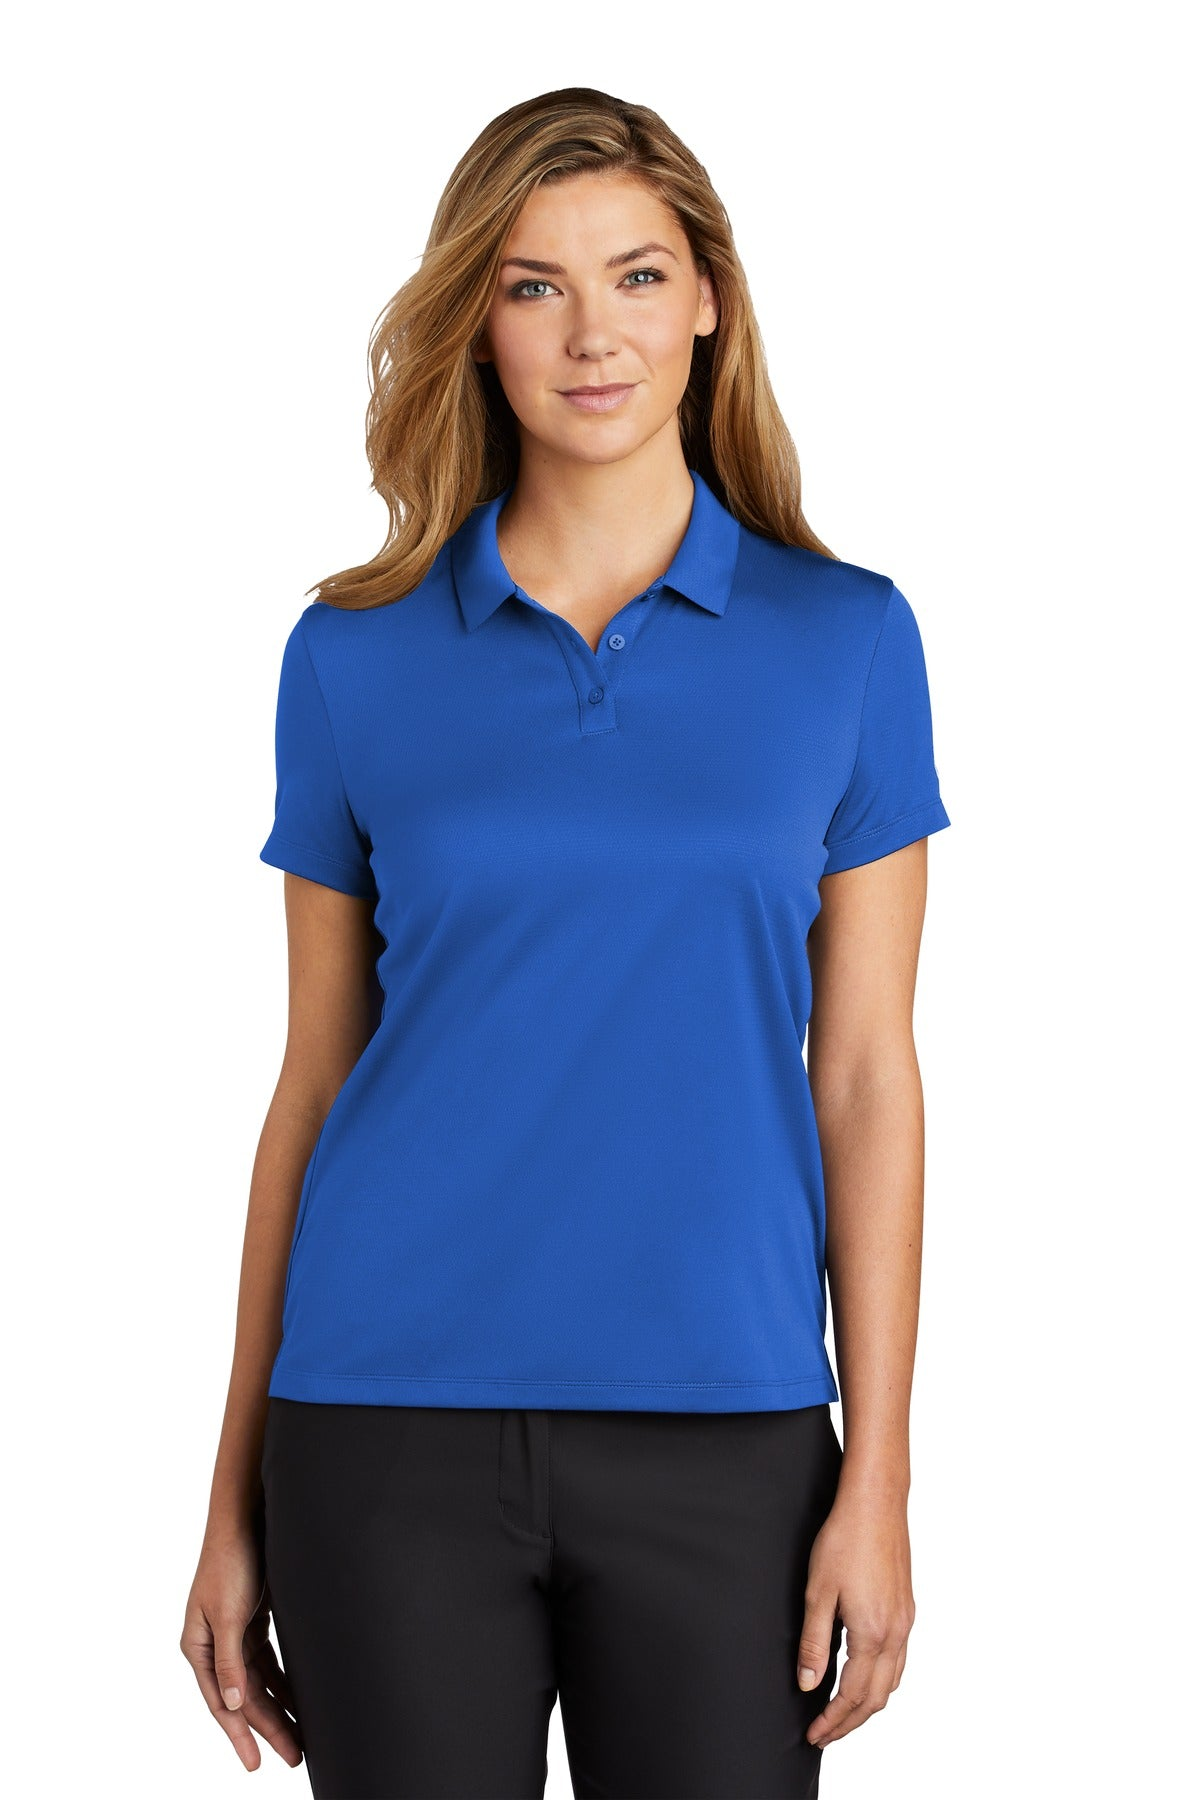 Nike Ladies Dry Essential Solid Polo NKBV6043